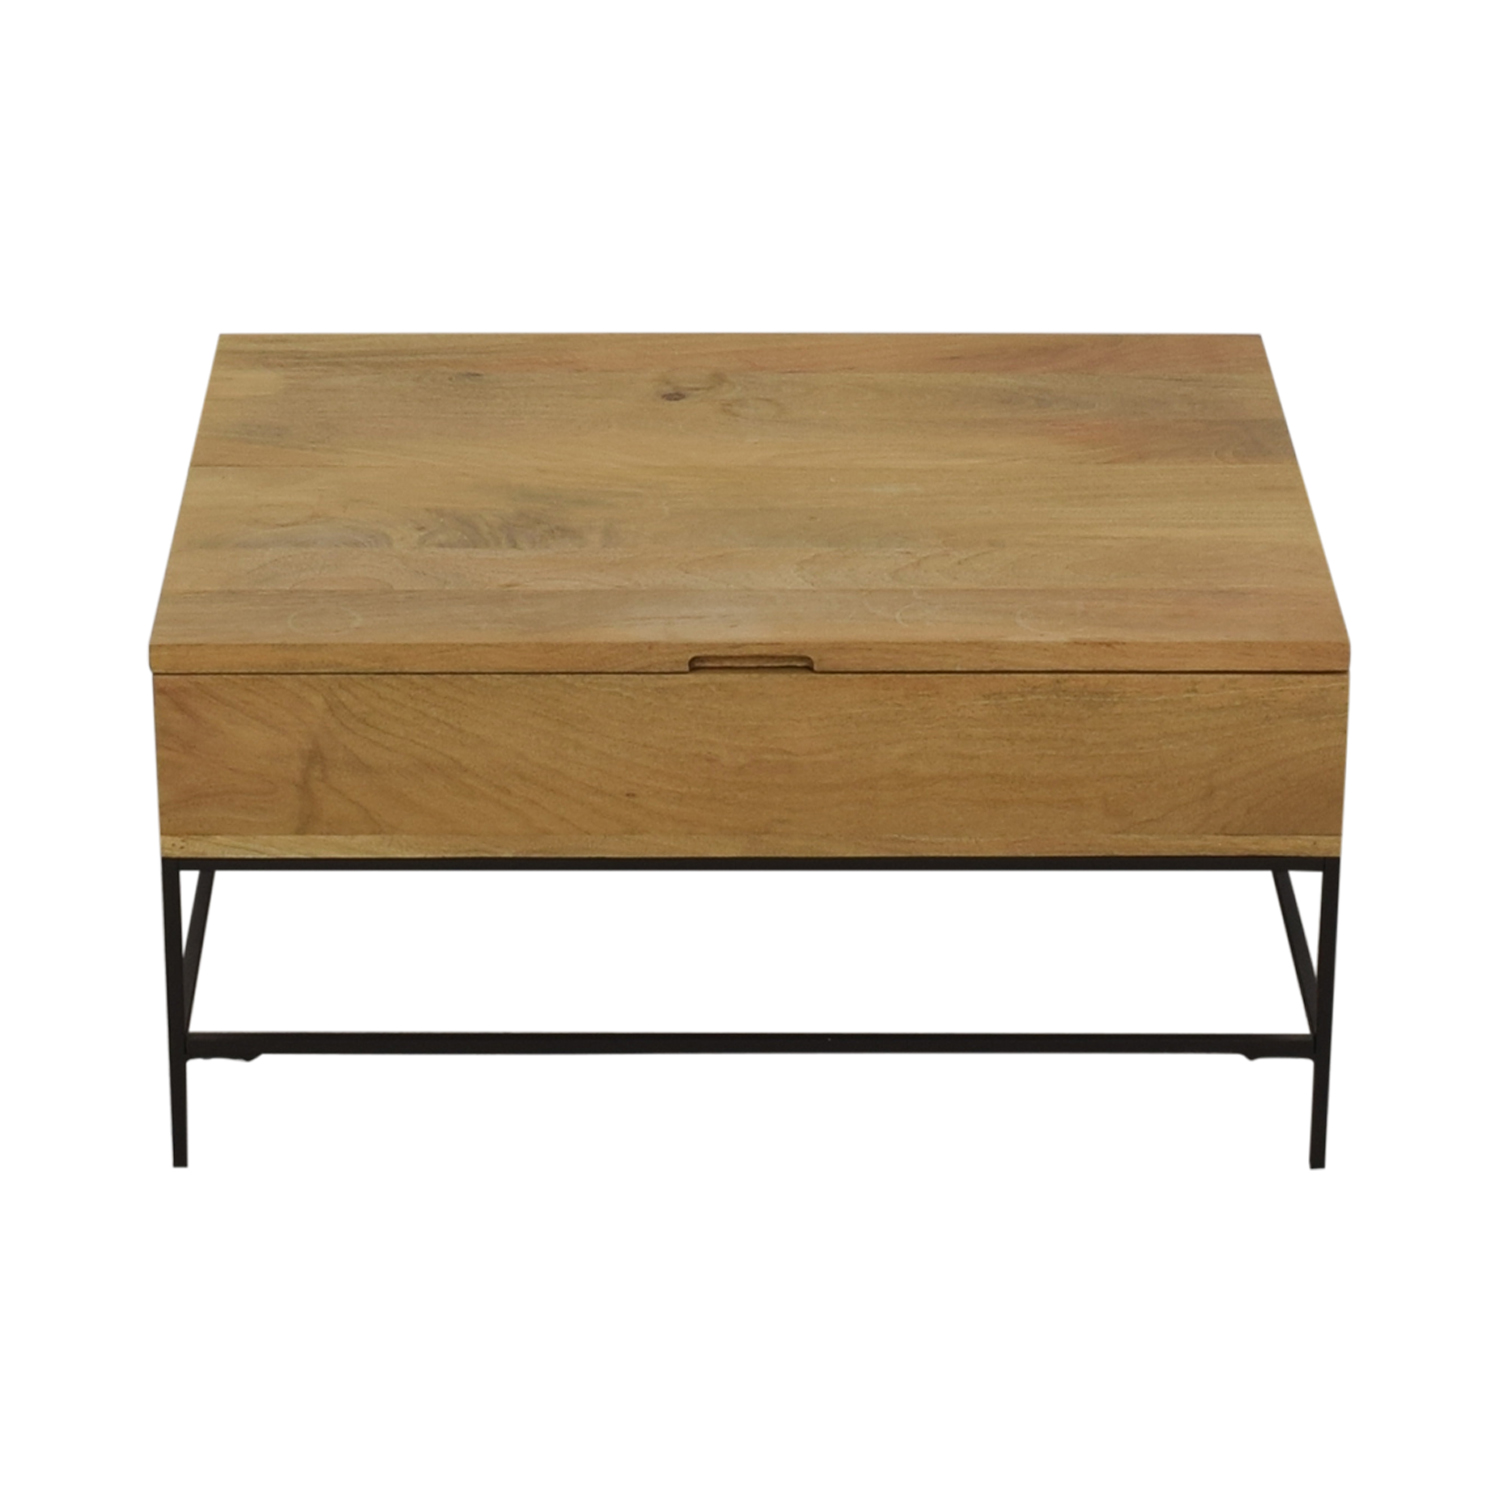 West Elm West Elm Industrial Storage Pop-Up Coffee Table